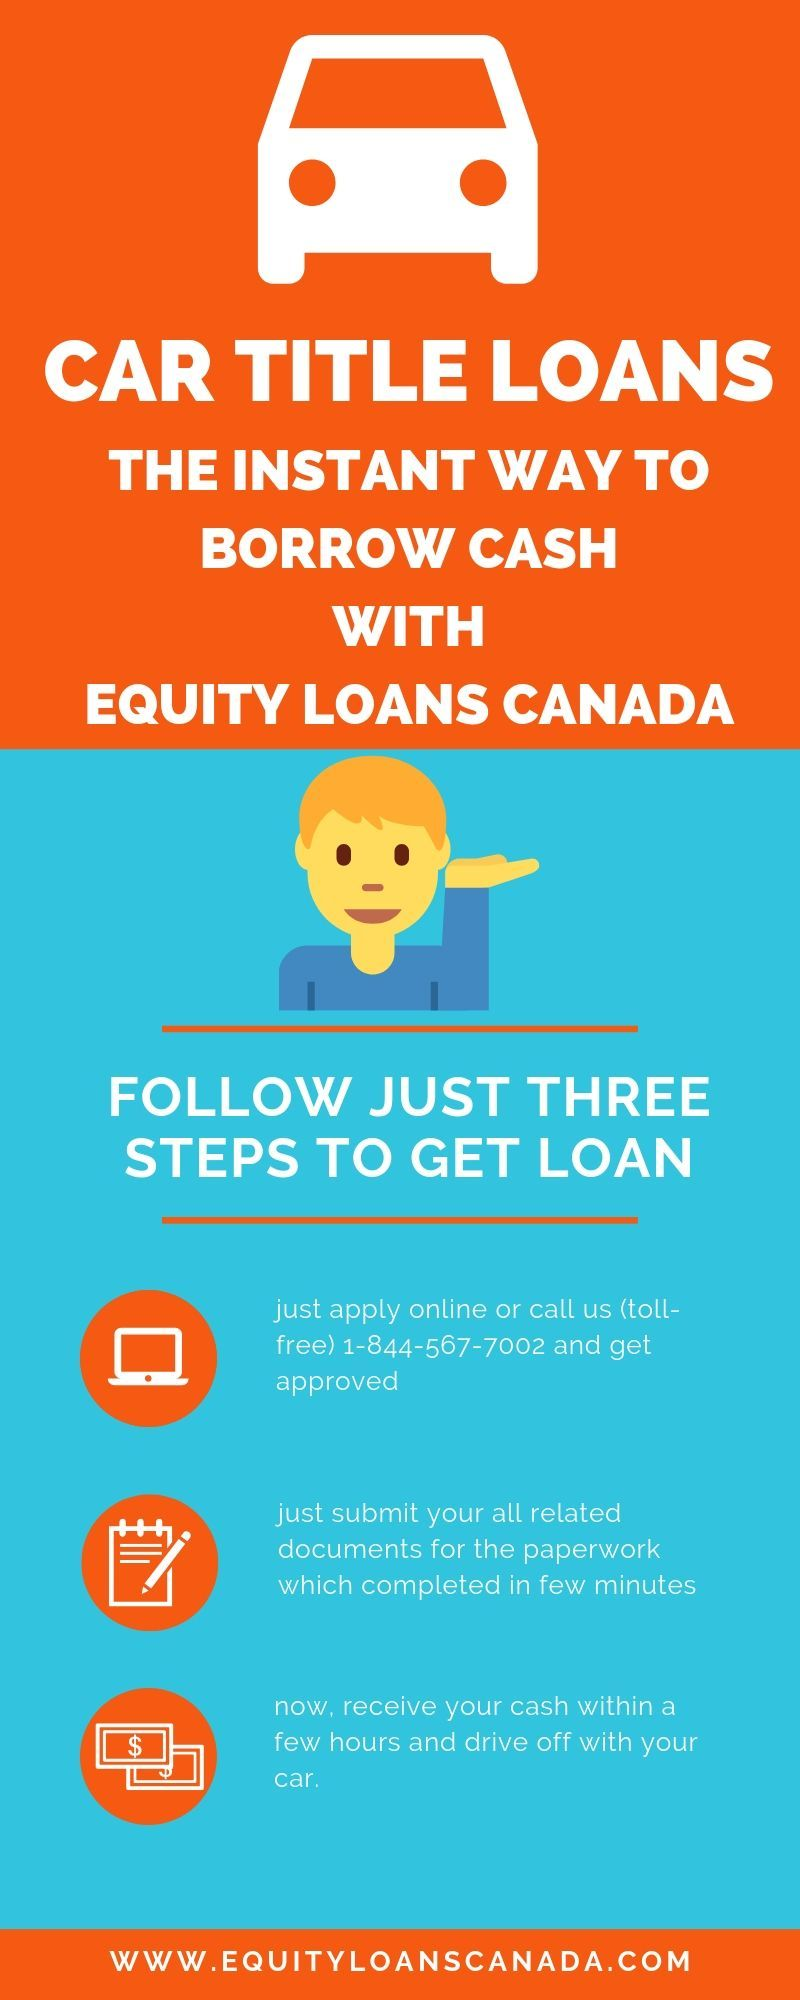 Can I Easily Get Approved For Car Title Loans With Low Credit In Kelowna Bad Credit Car Title Bad Credit Car Loan